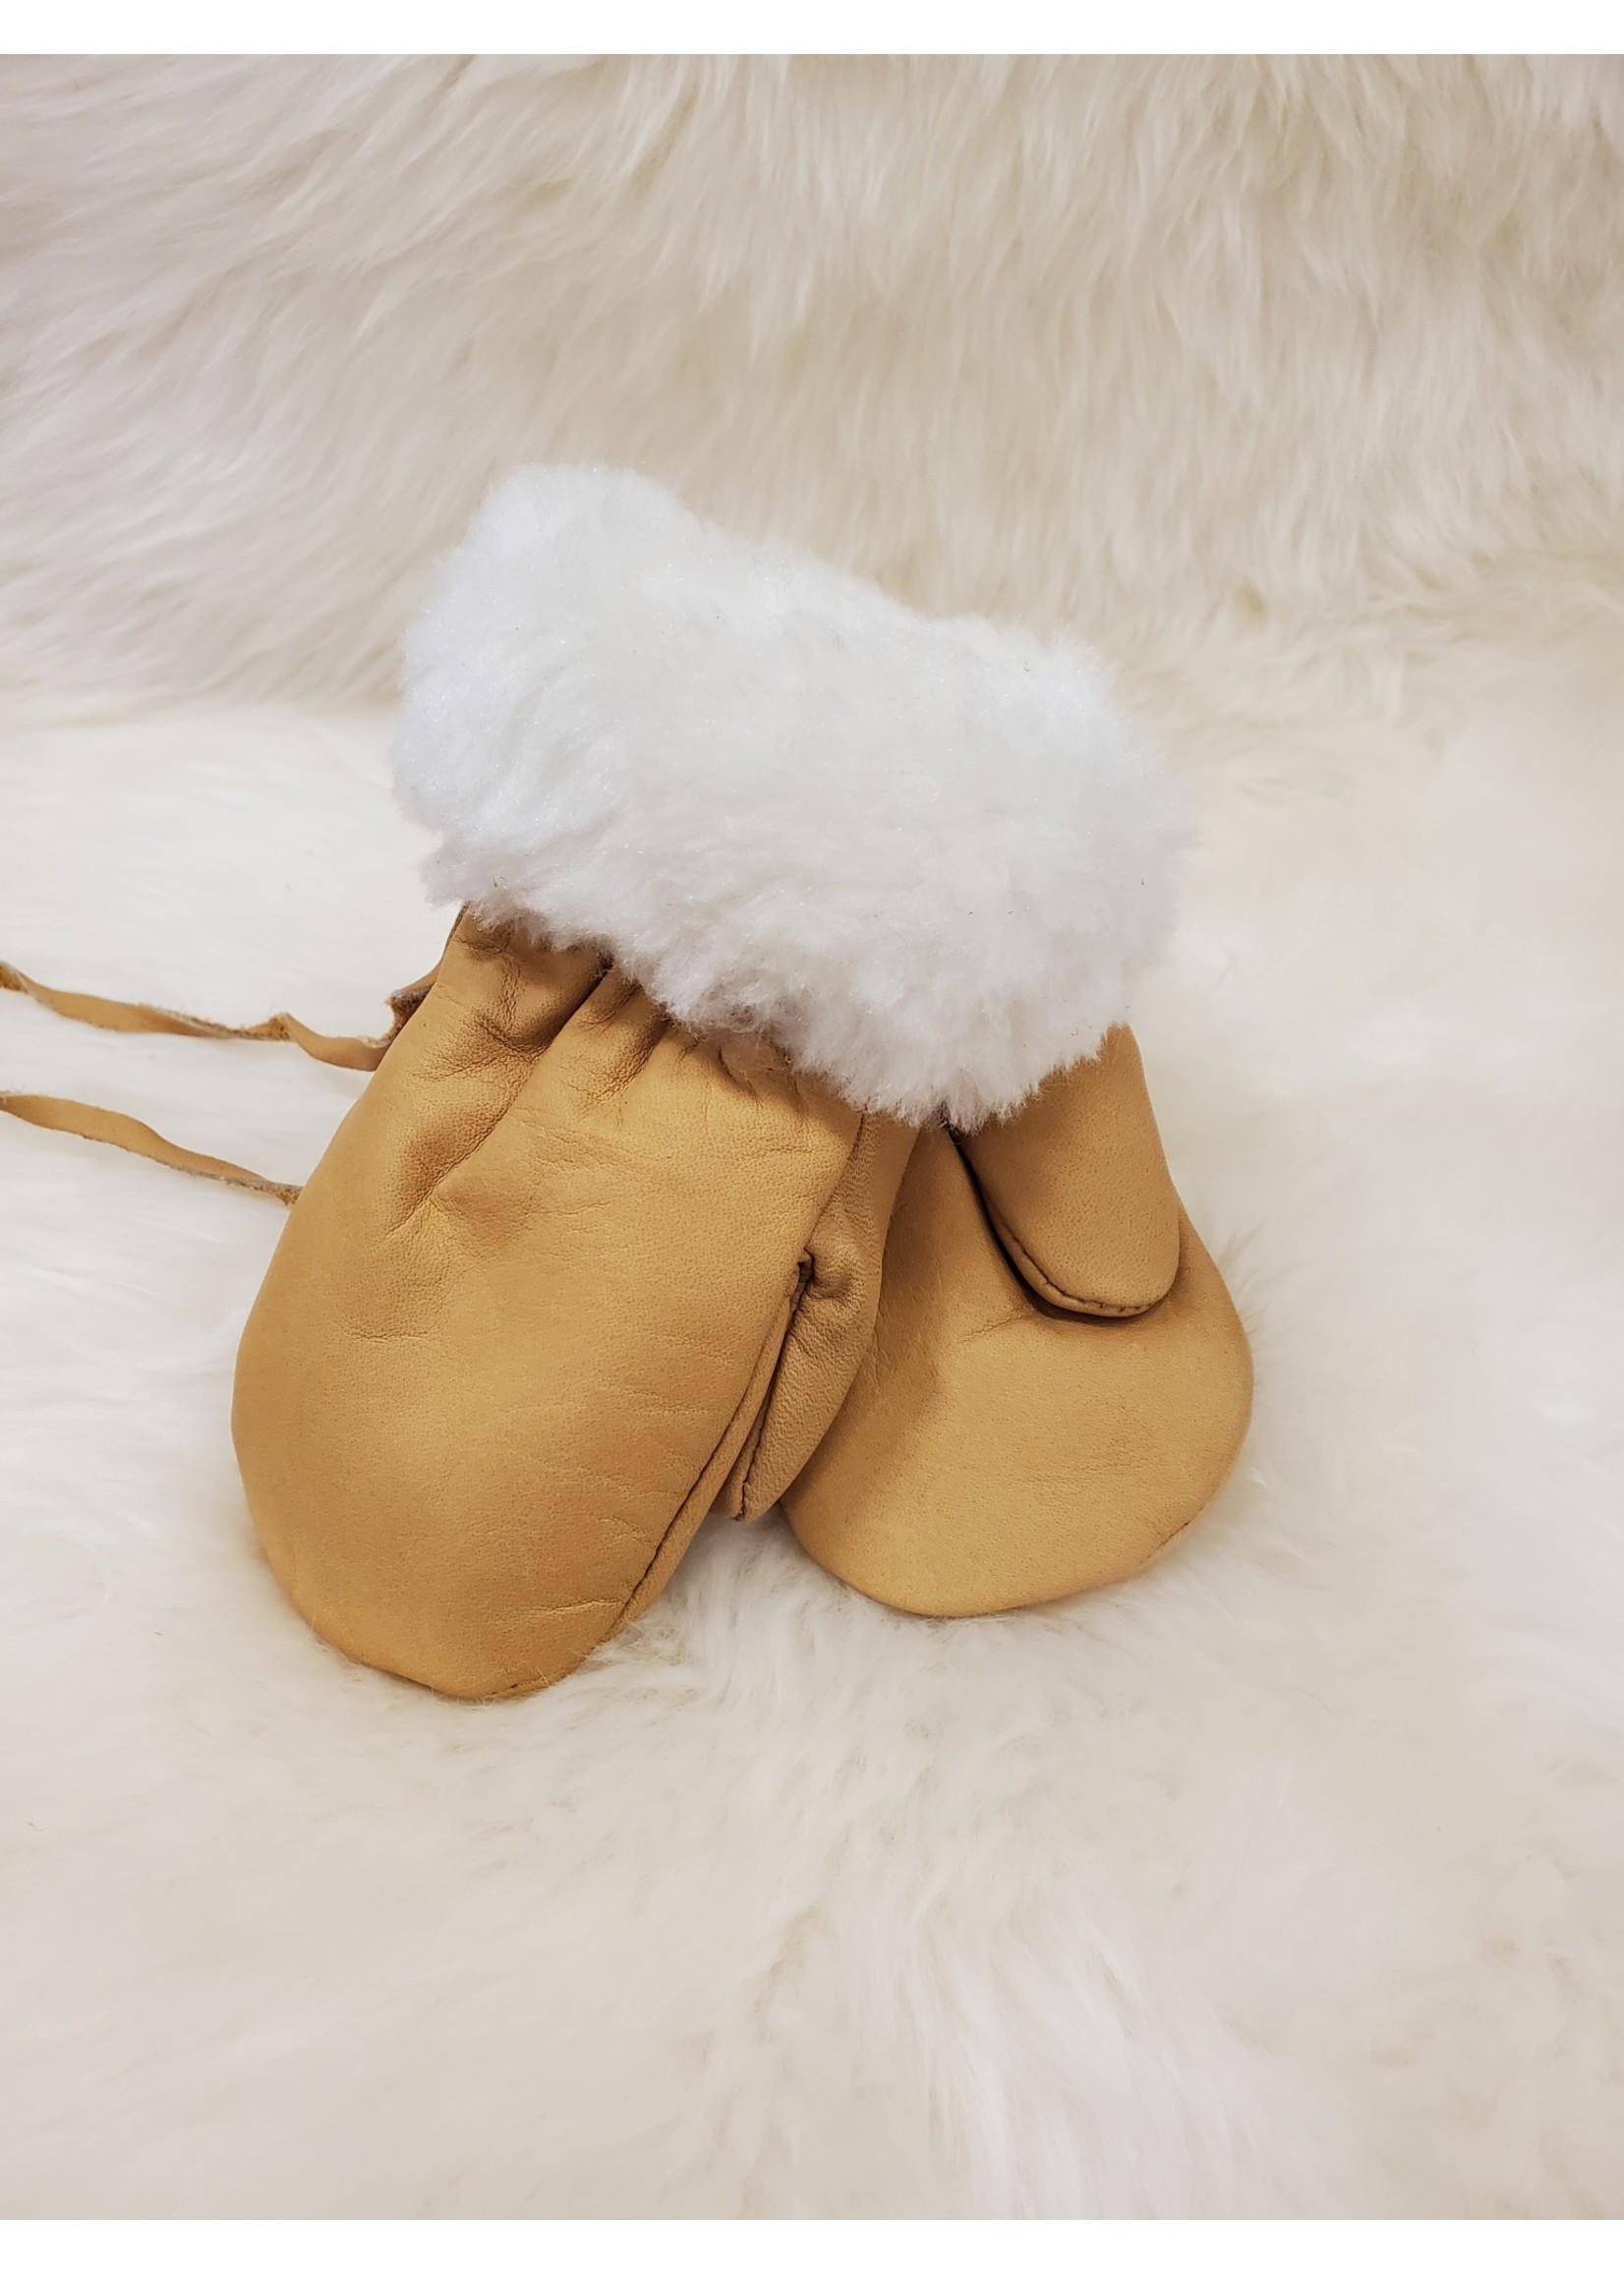 LEATHER MITTENS K235